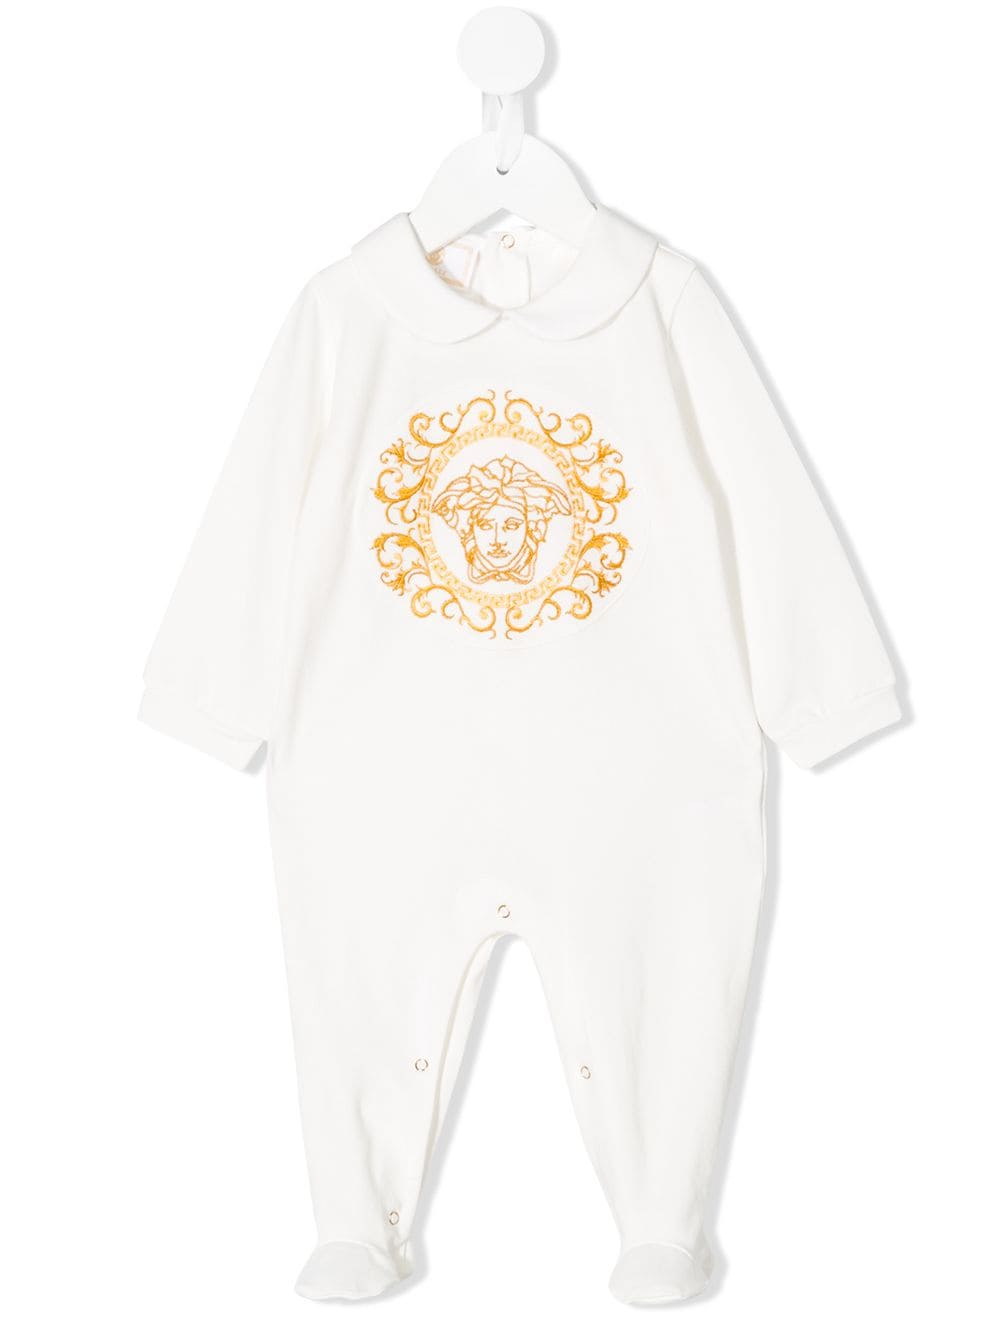 VERSACE KIDS long sleeve medusa logo bodysuit white - Maison De Fashion